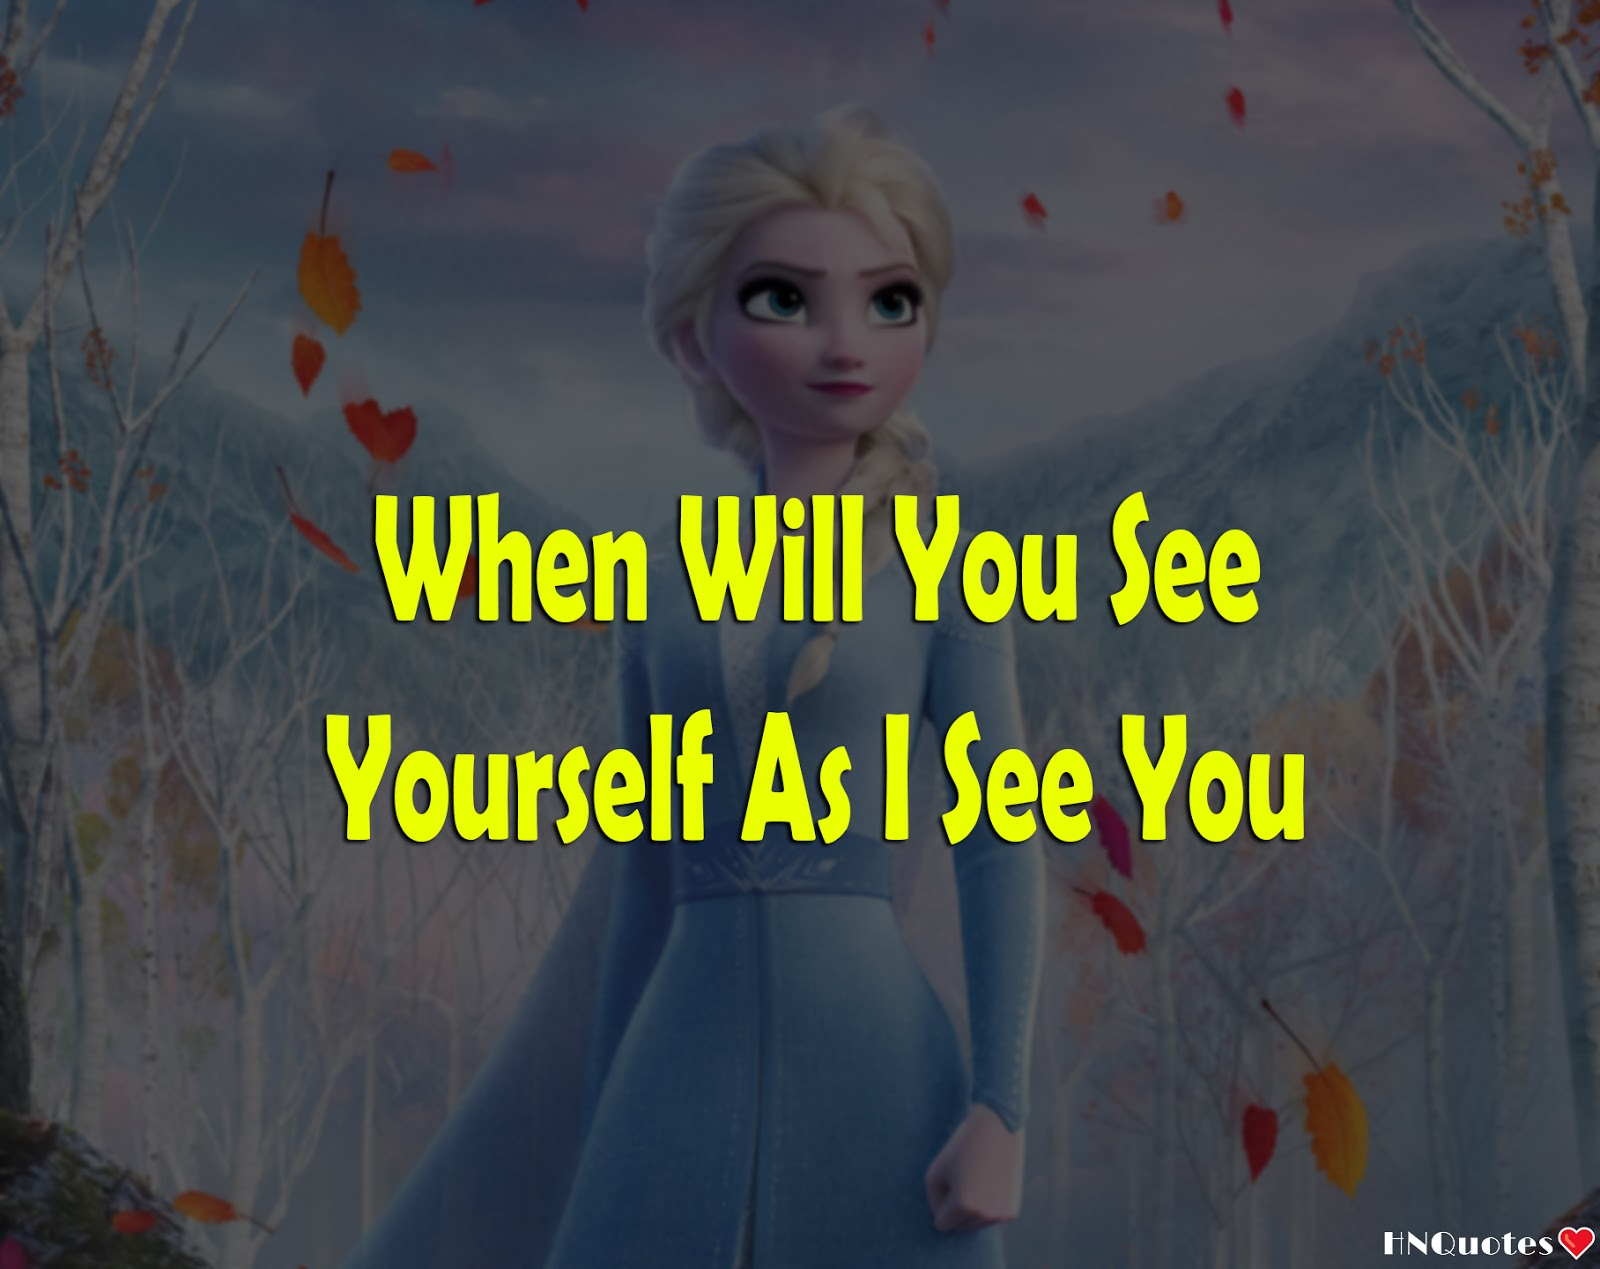 Frozen 2 | Top 10 Best Quotes in Disney's Frozen 2 | Awesome Lines | HNQuotes